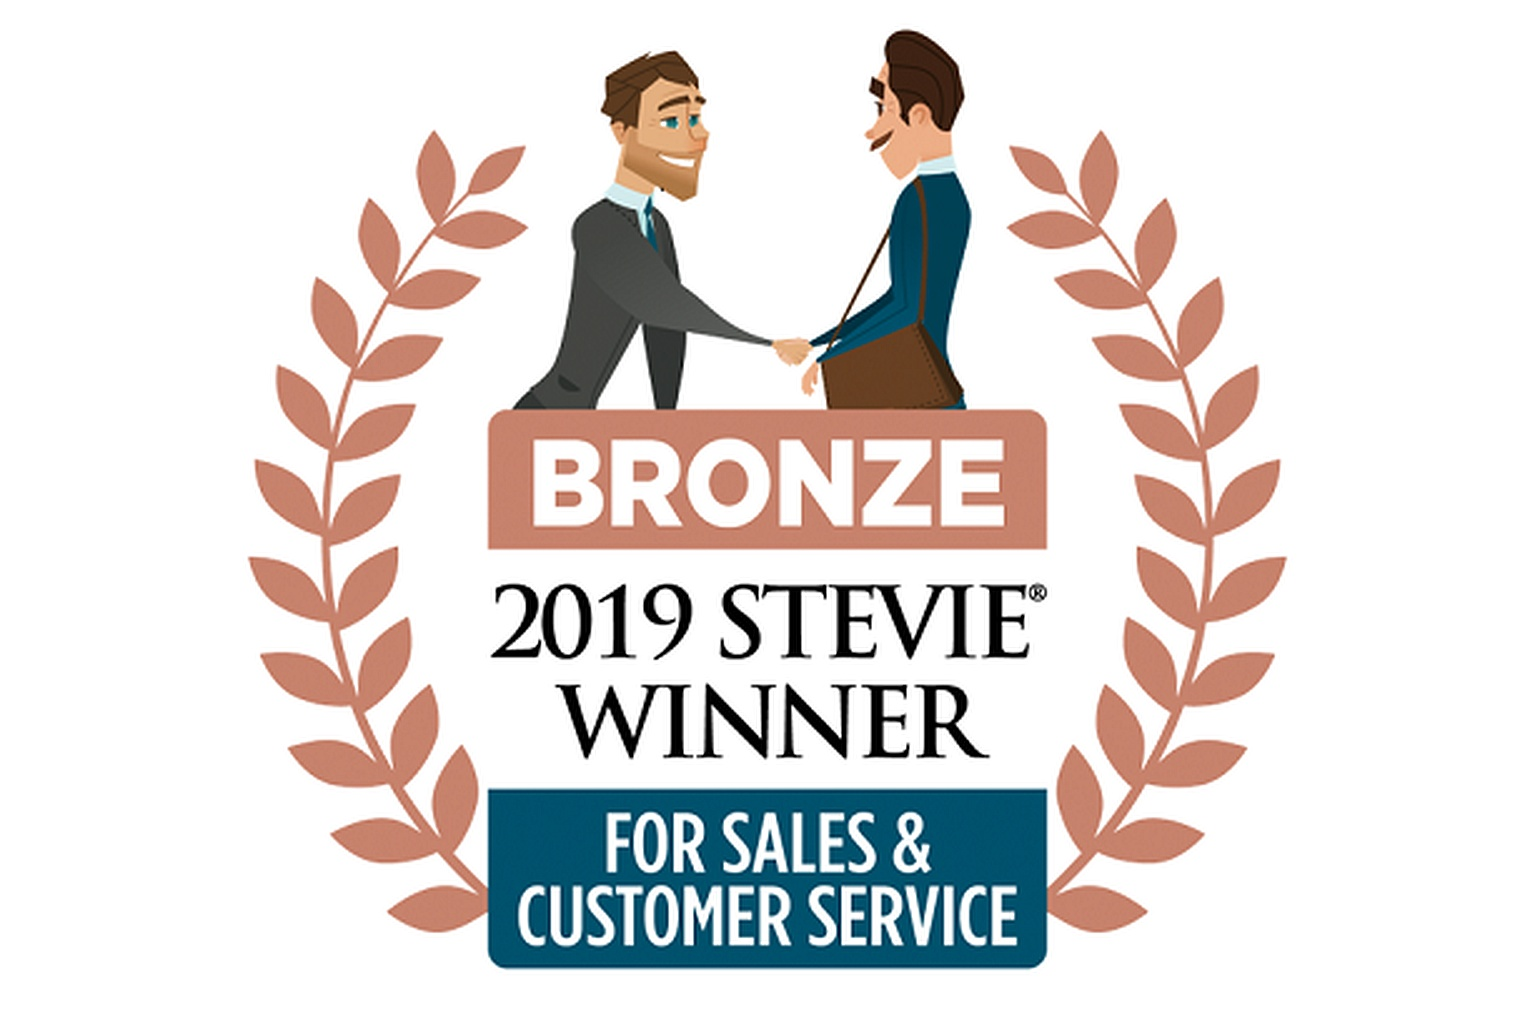 CT Corporation wins Stevie Award for customer service